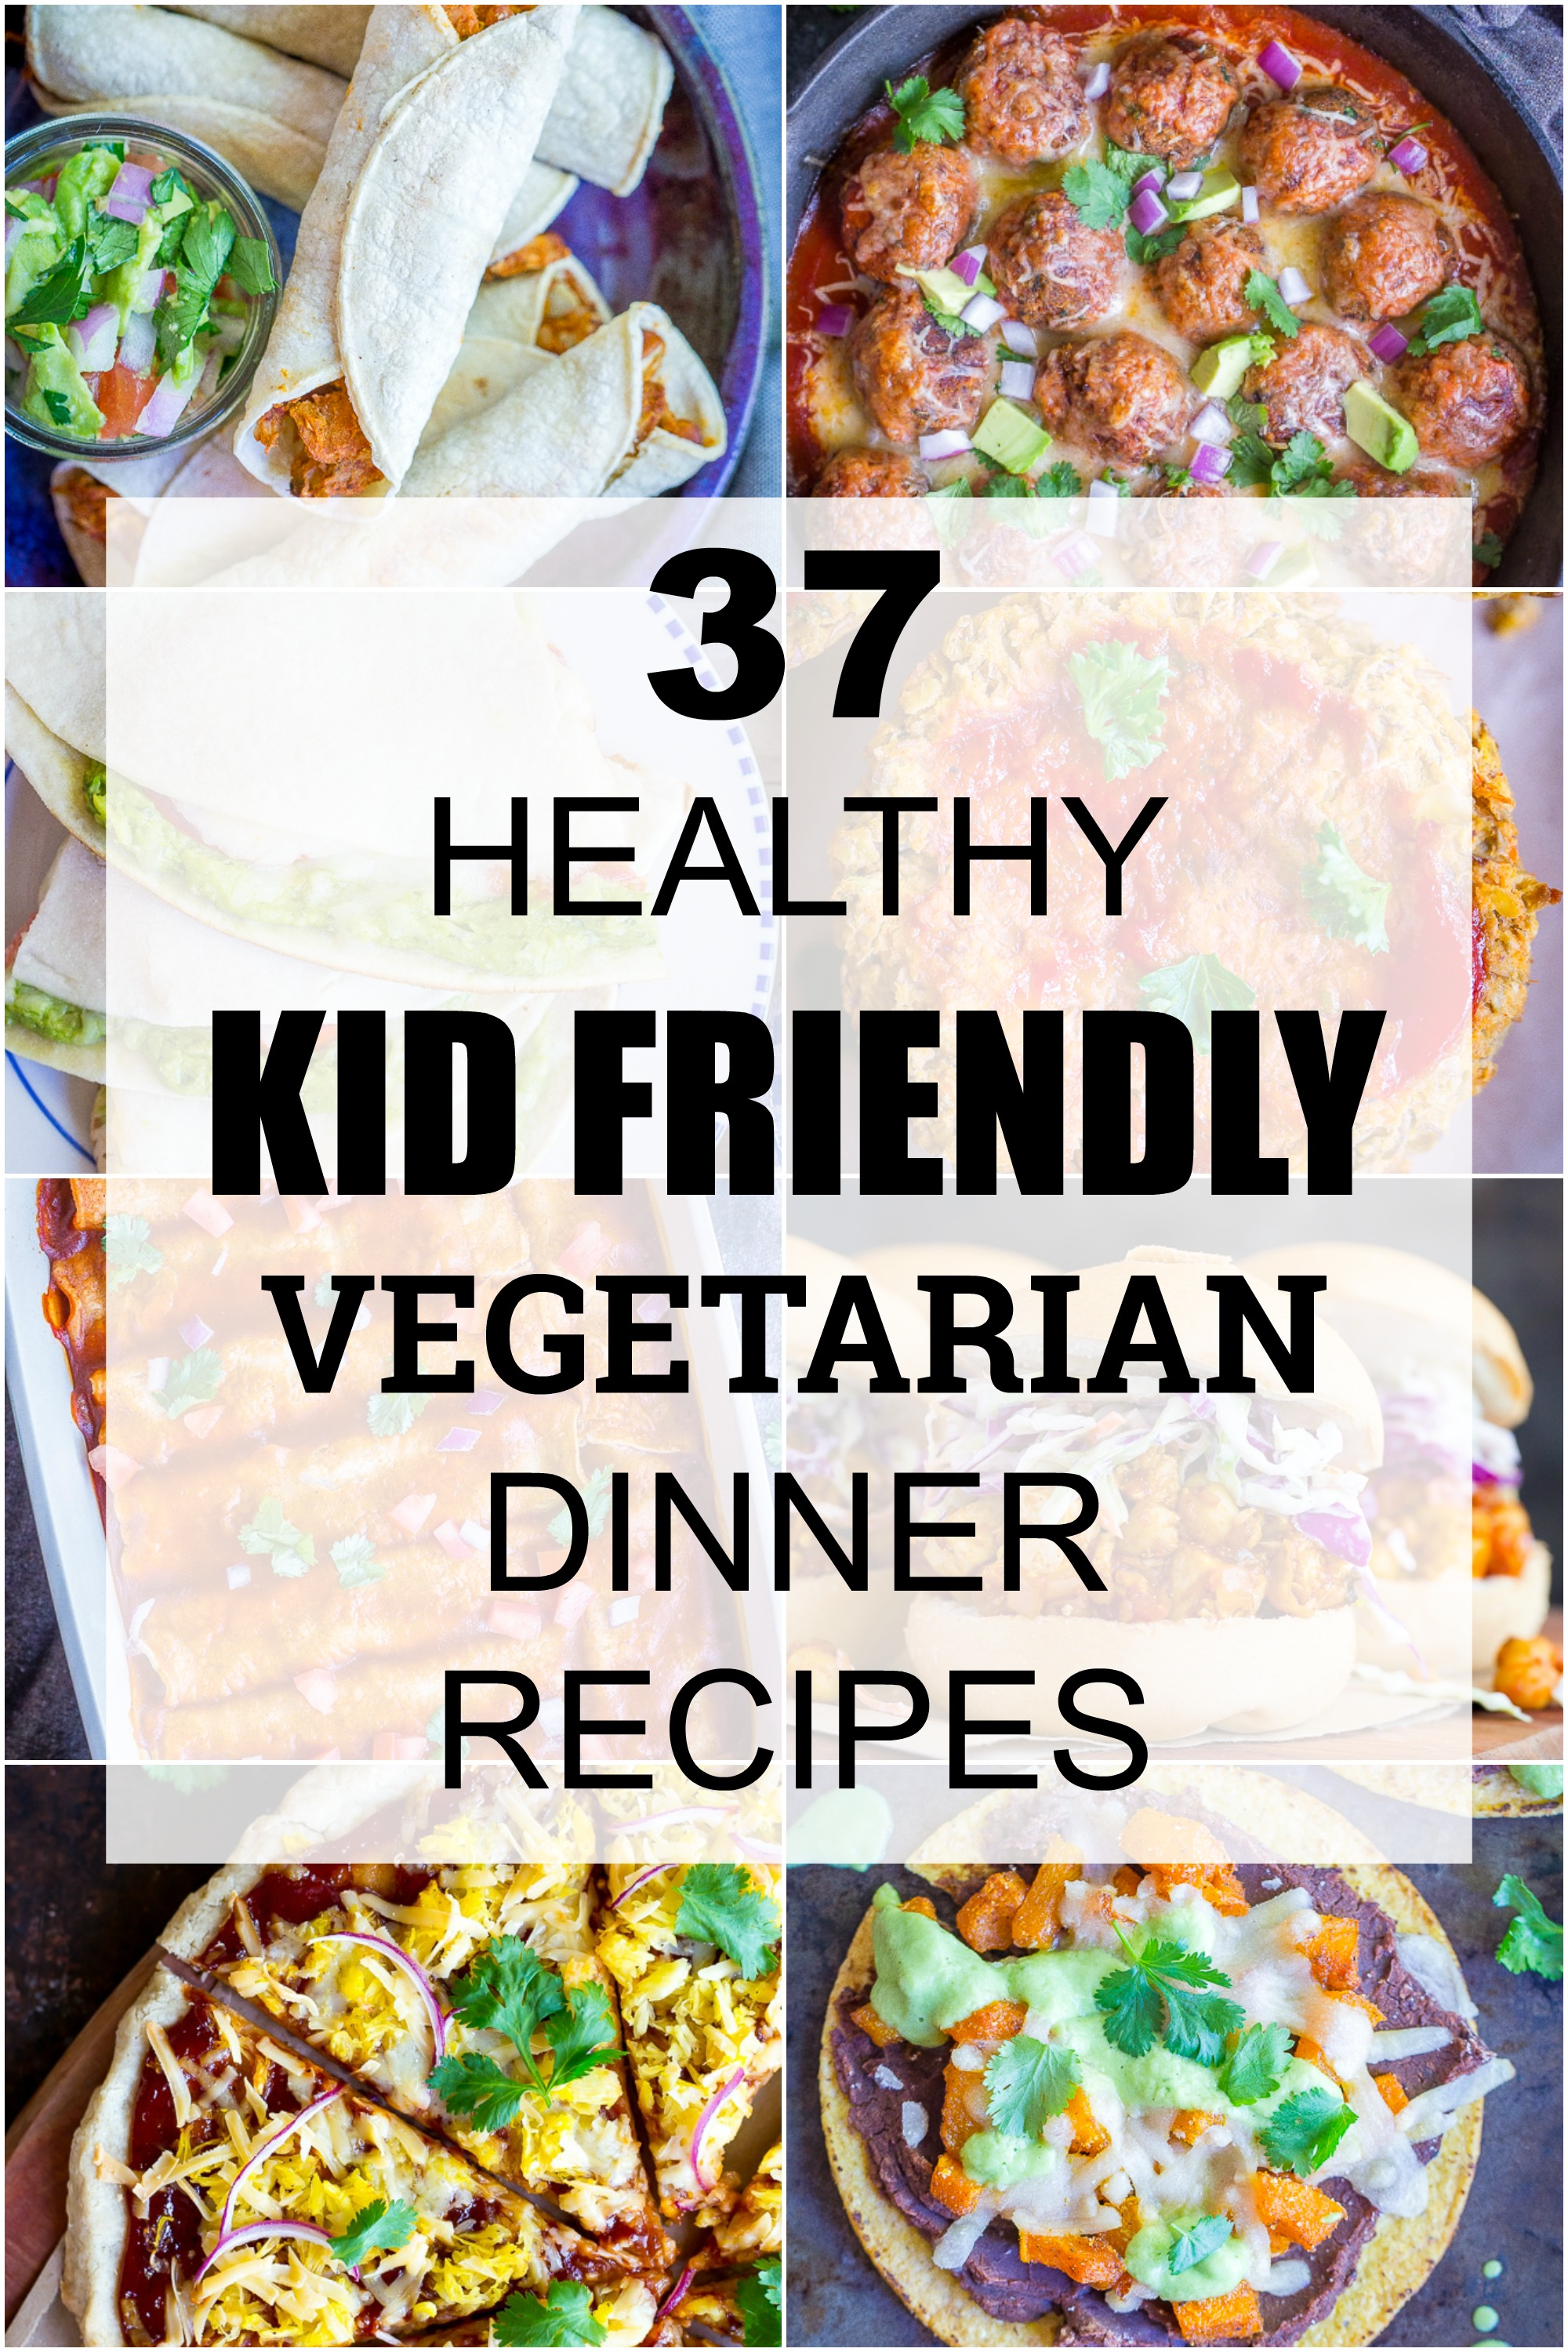 37 Healthy Kid Friendly Vegetarian Dinner Recipes She Likes Food